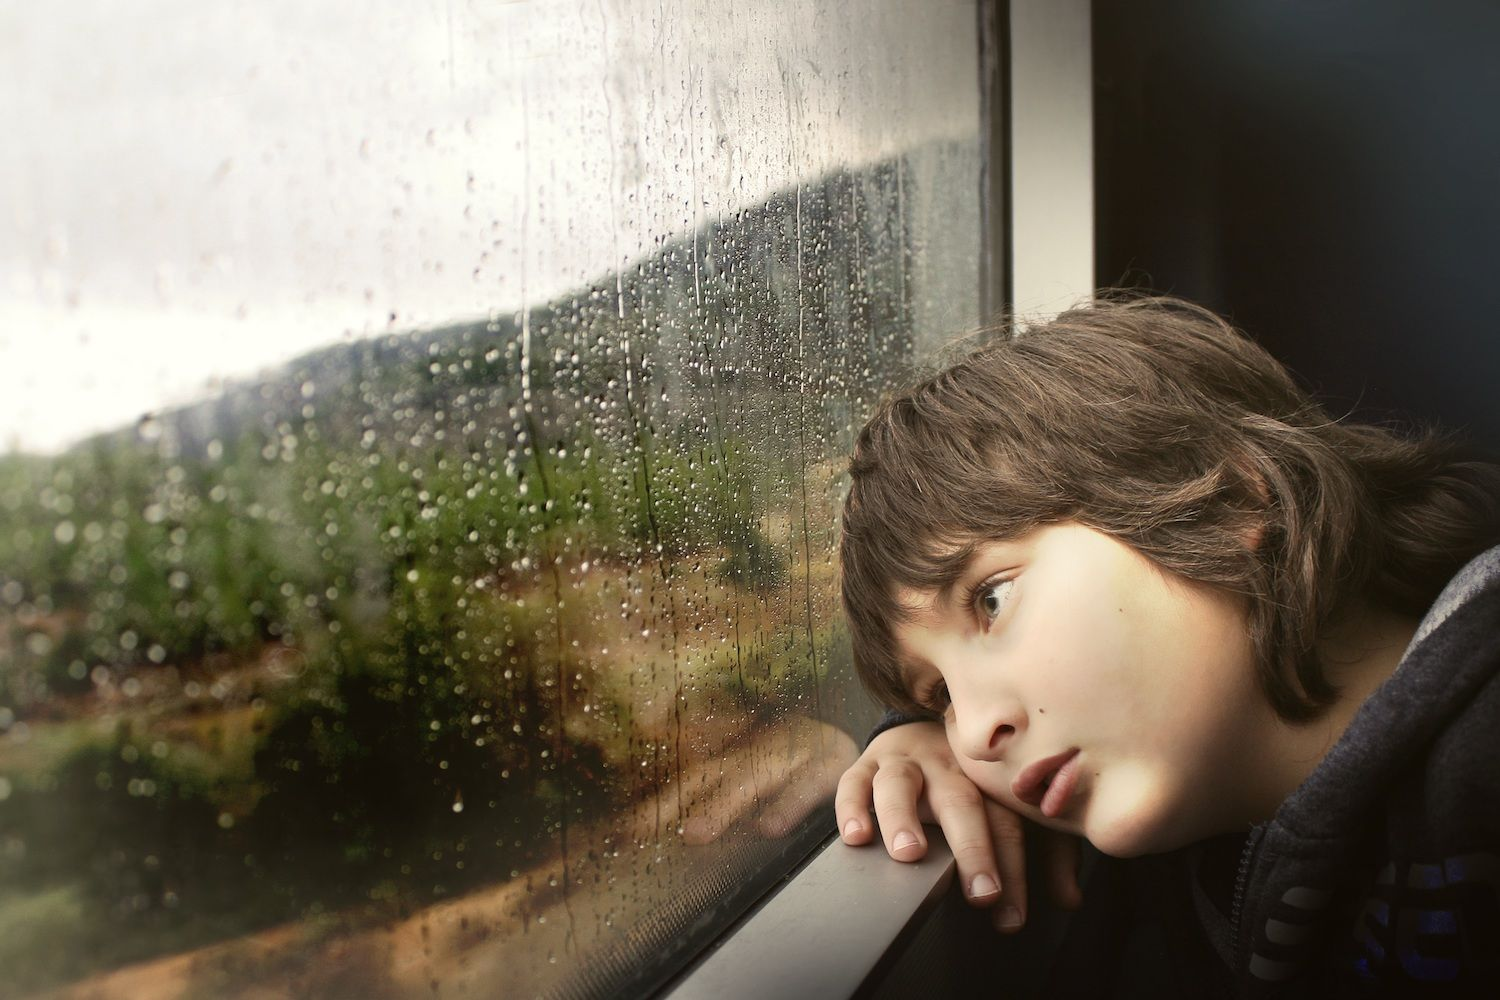 Depressed Boy Staring Out of a Window - How to Identify Children Suffering from ACEs